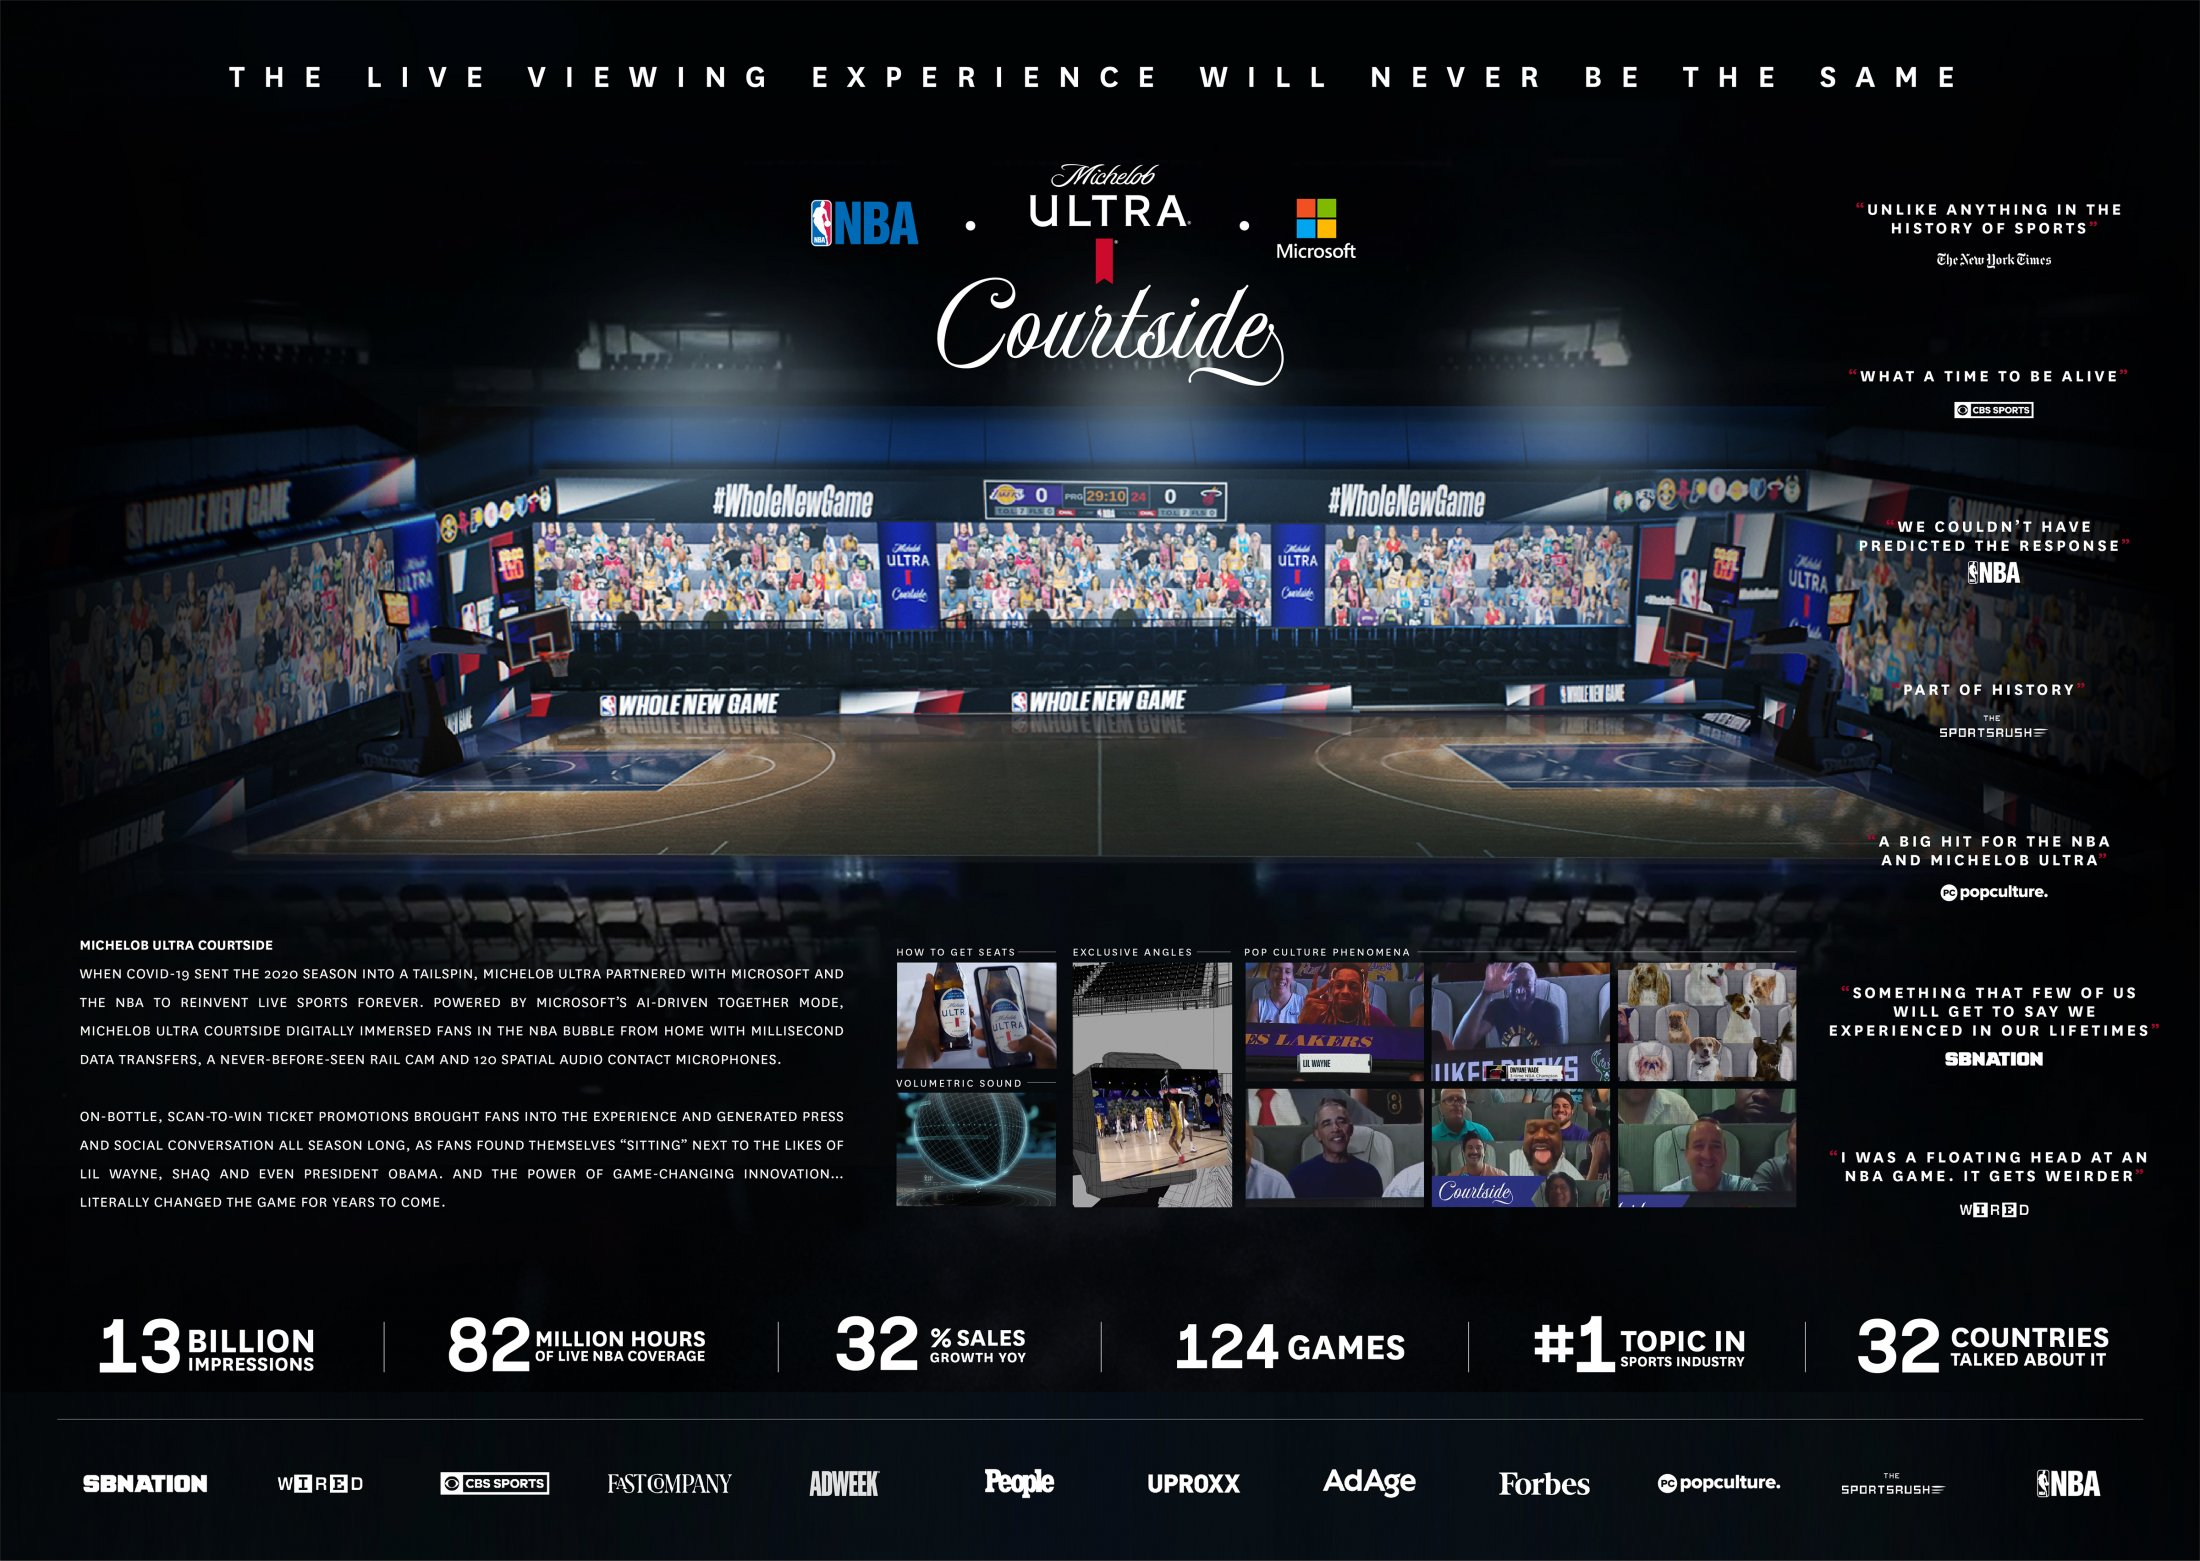 Thumbnail for Michelob ULTRA Courtside